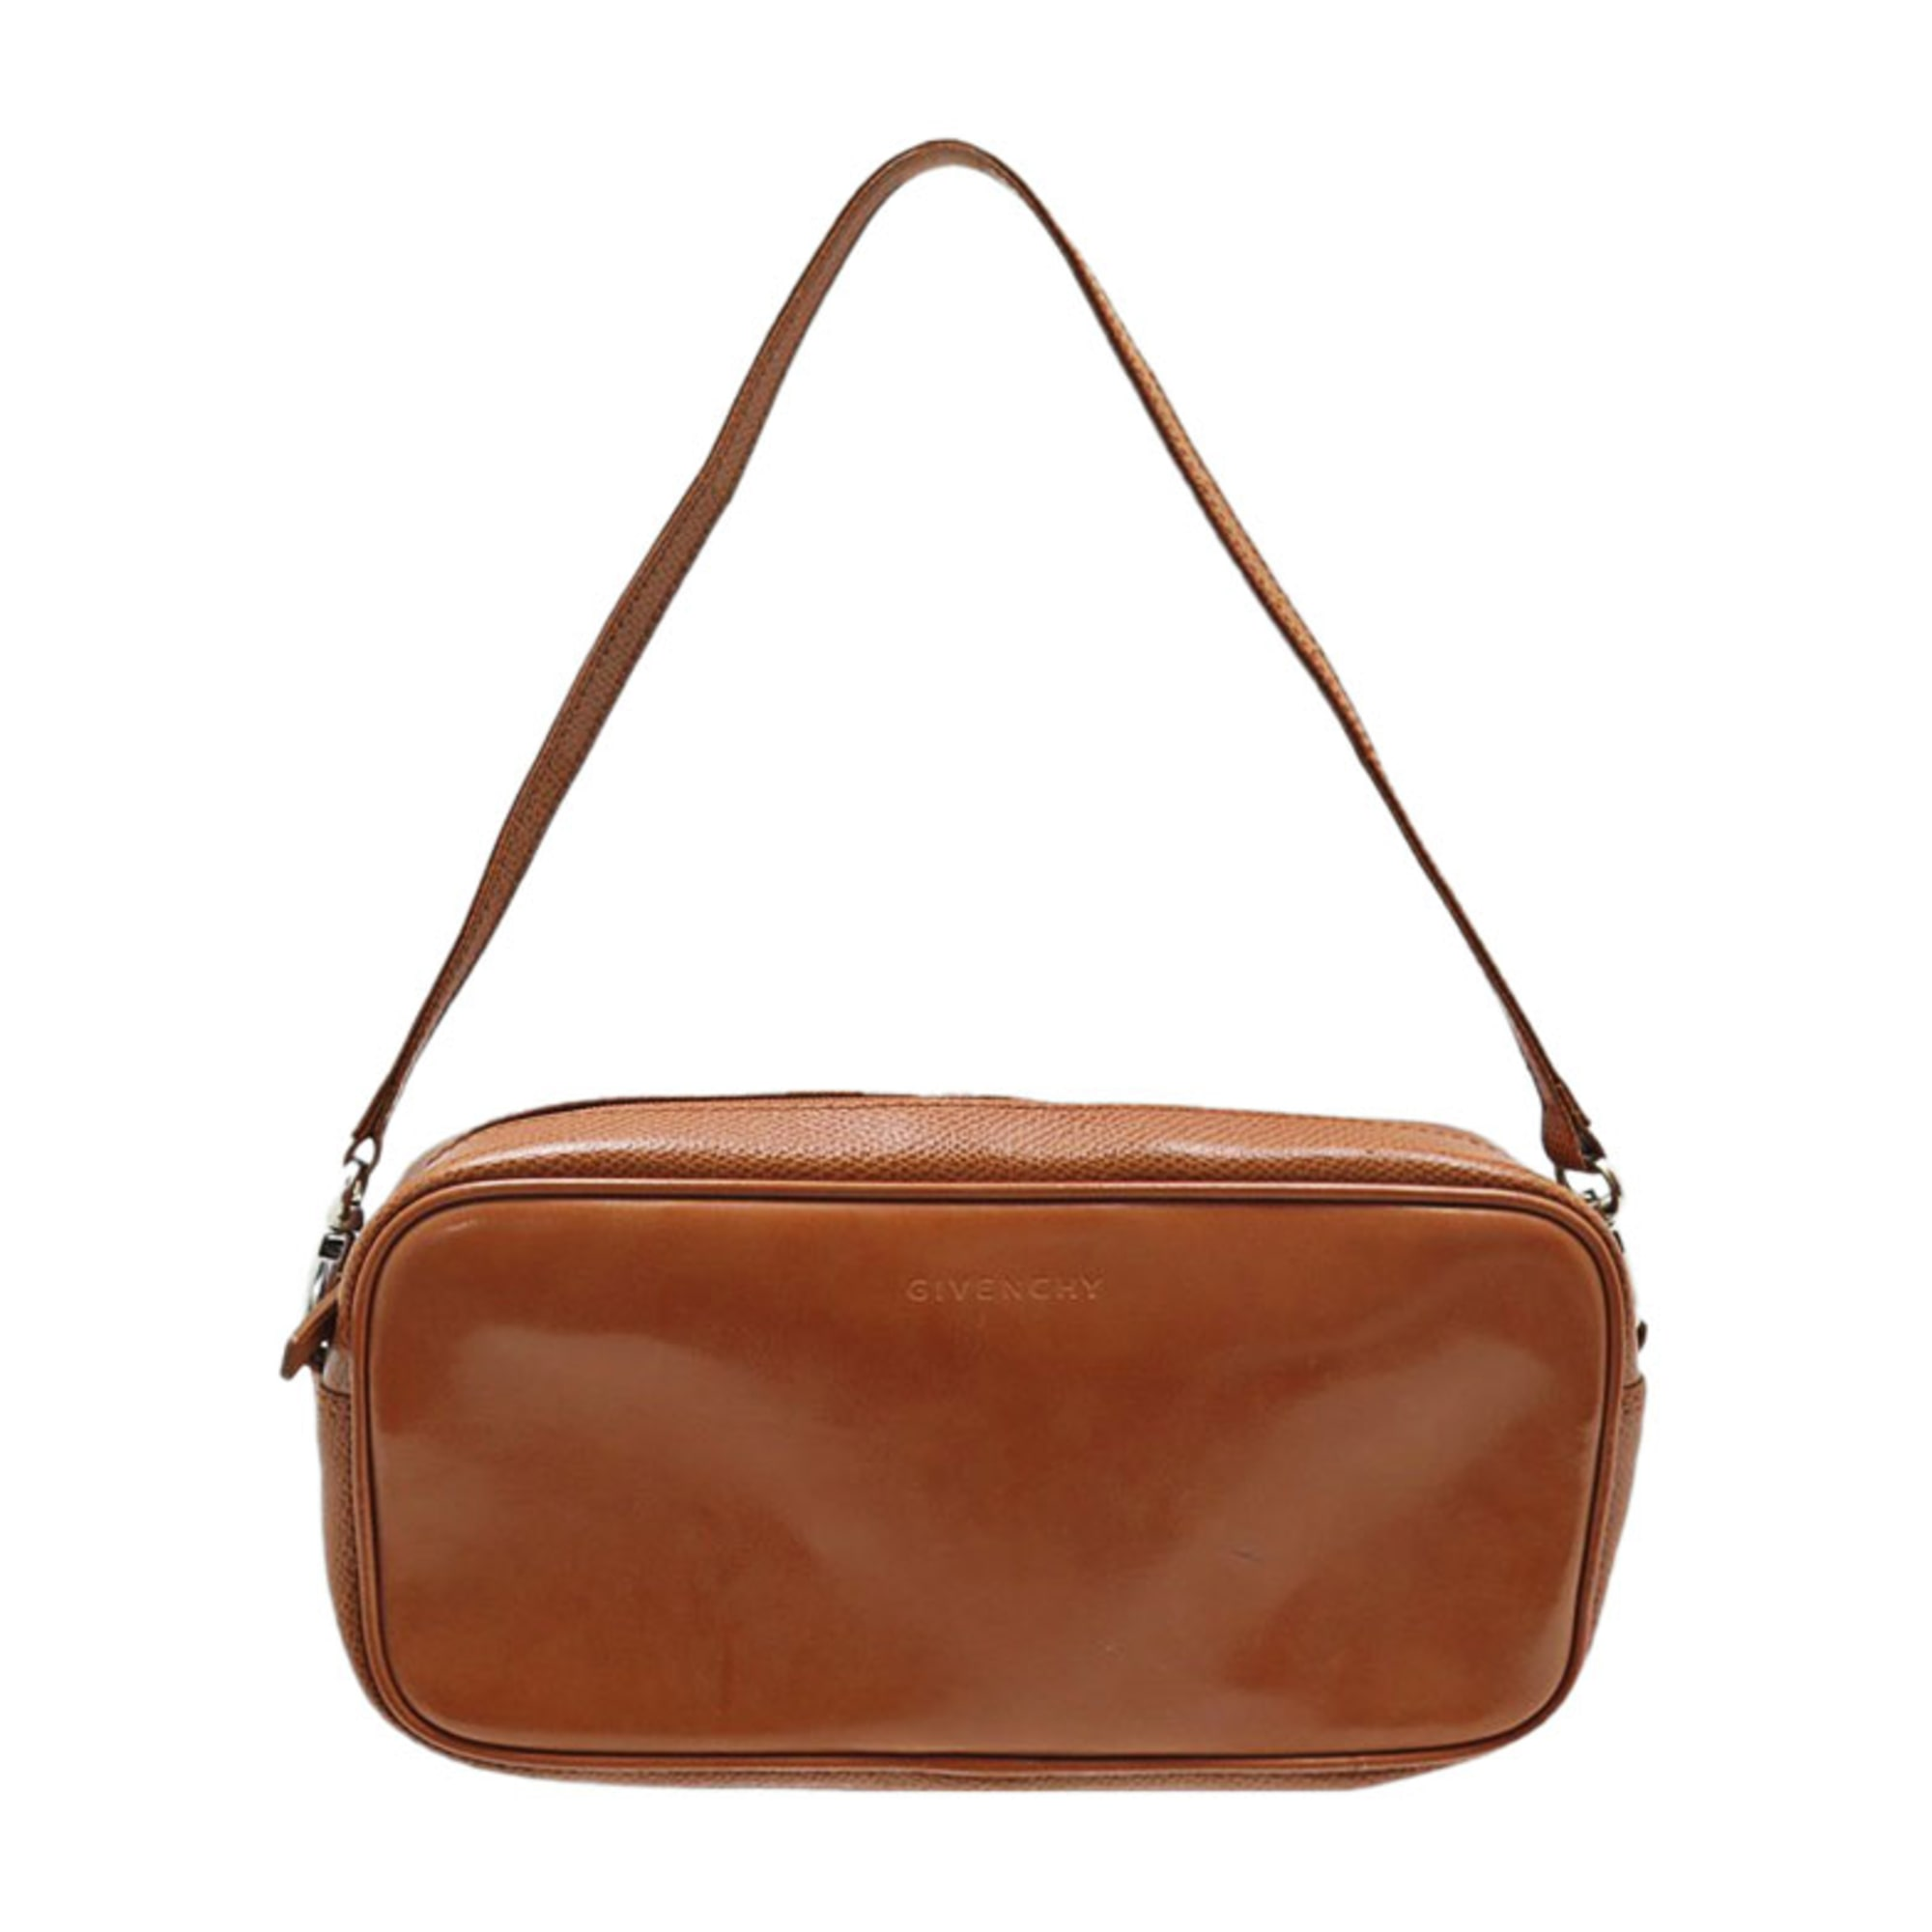 234e266f3b Sac à main en cuir GIVENCHY marron - 8543728